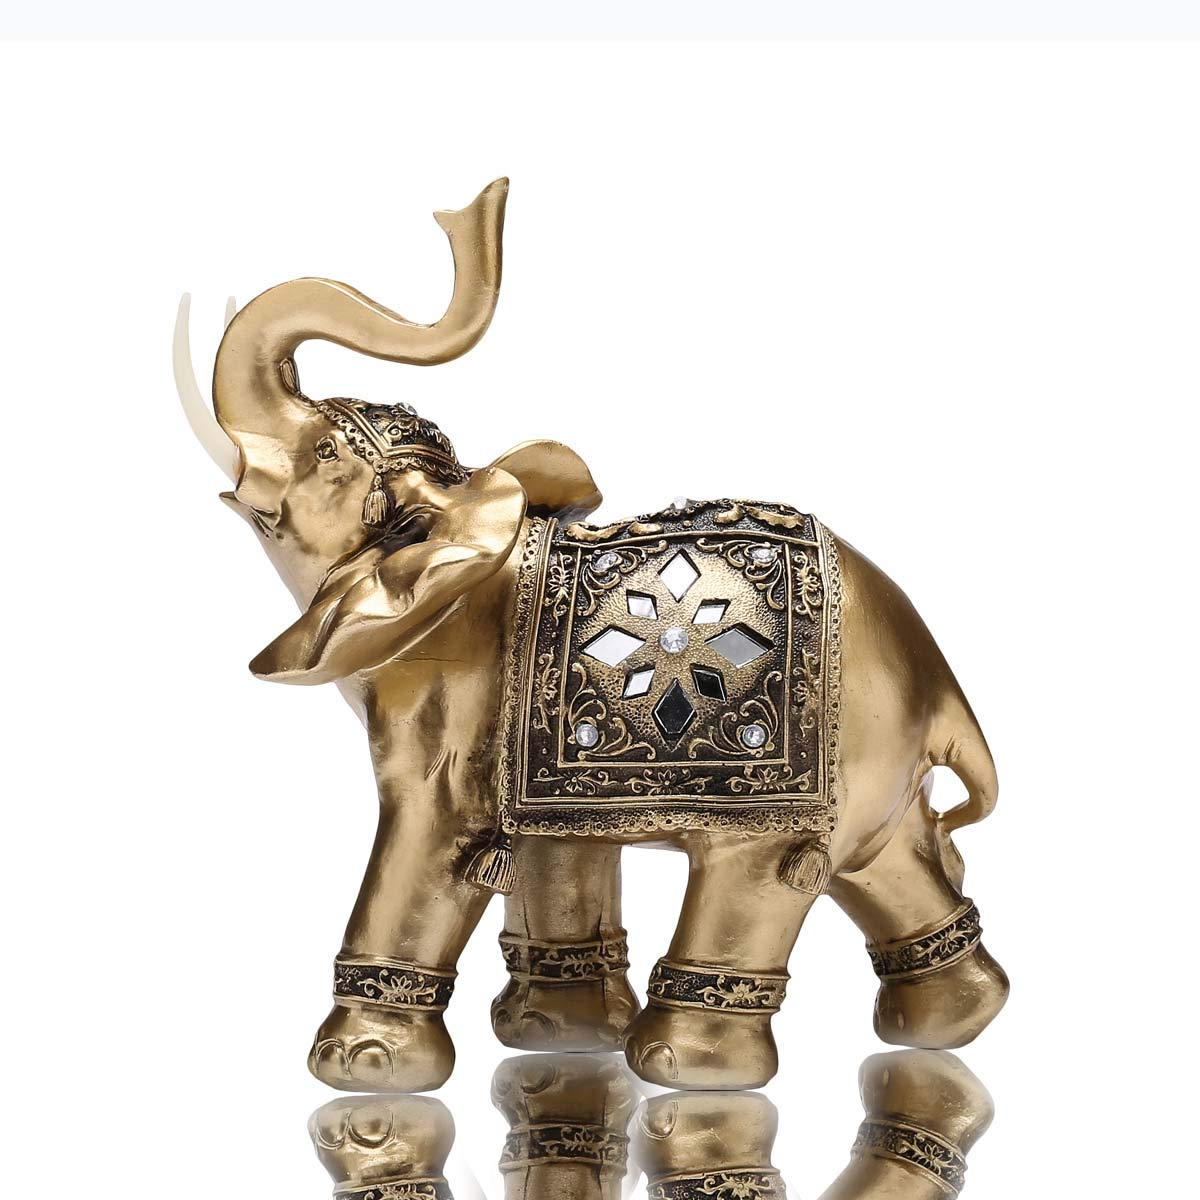 TOUCH MISS Golden Thai Elephant with Trunk Raised Collectible Figurines(Large) by TOUCH MISS